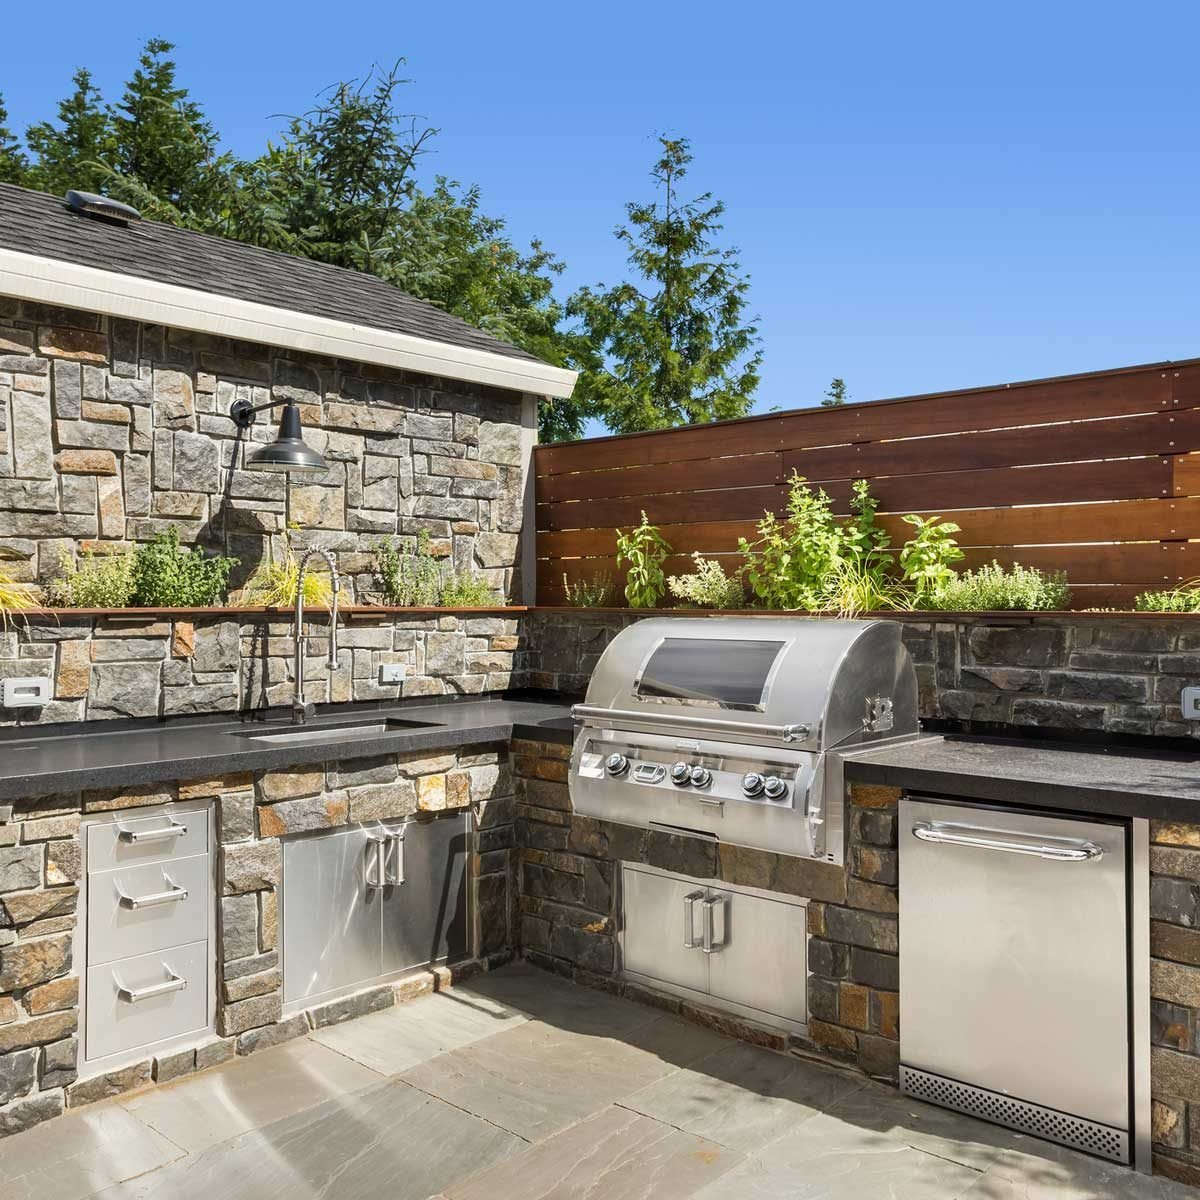 Everything You Need To Build an Outdoor Kitchen or Bar This Summer